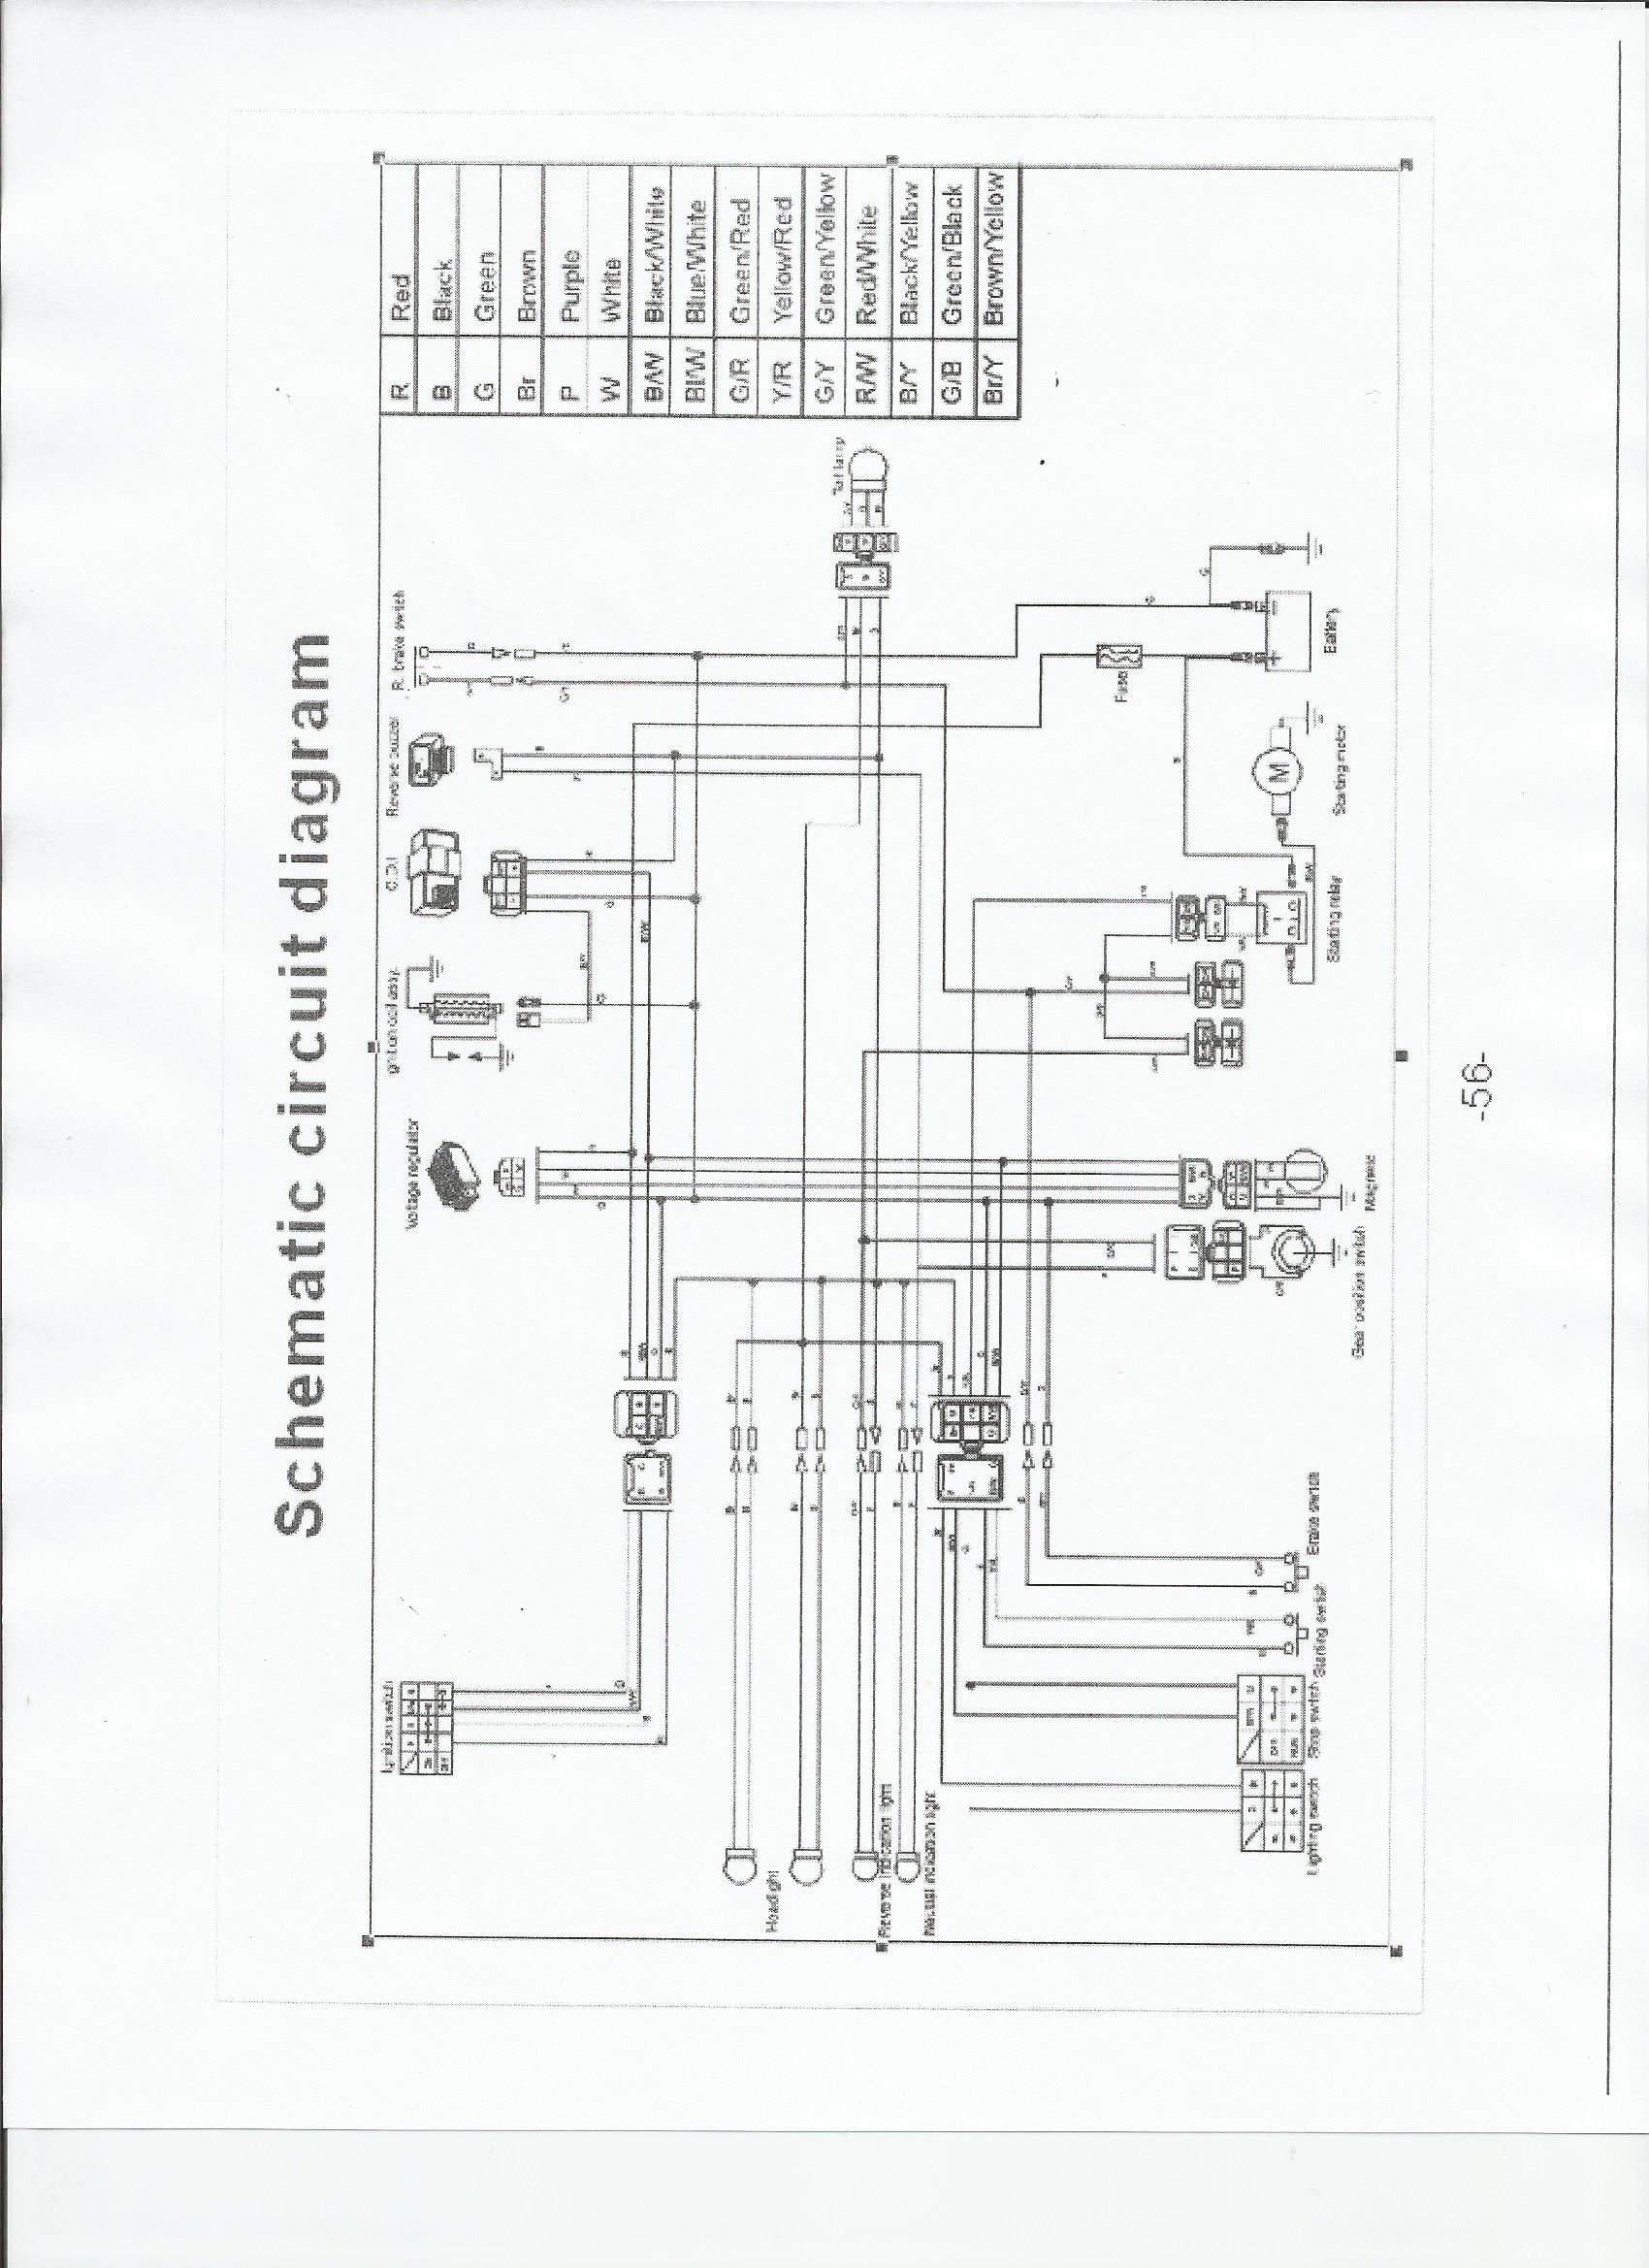 tao tao wiring schematic taotao mini and youth atv wiring schematic familygokarts support coolster 110 atv wiring diagram at edmiracle.co